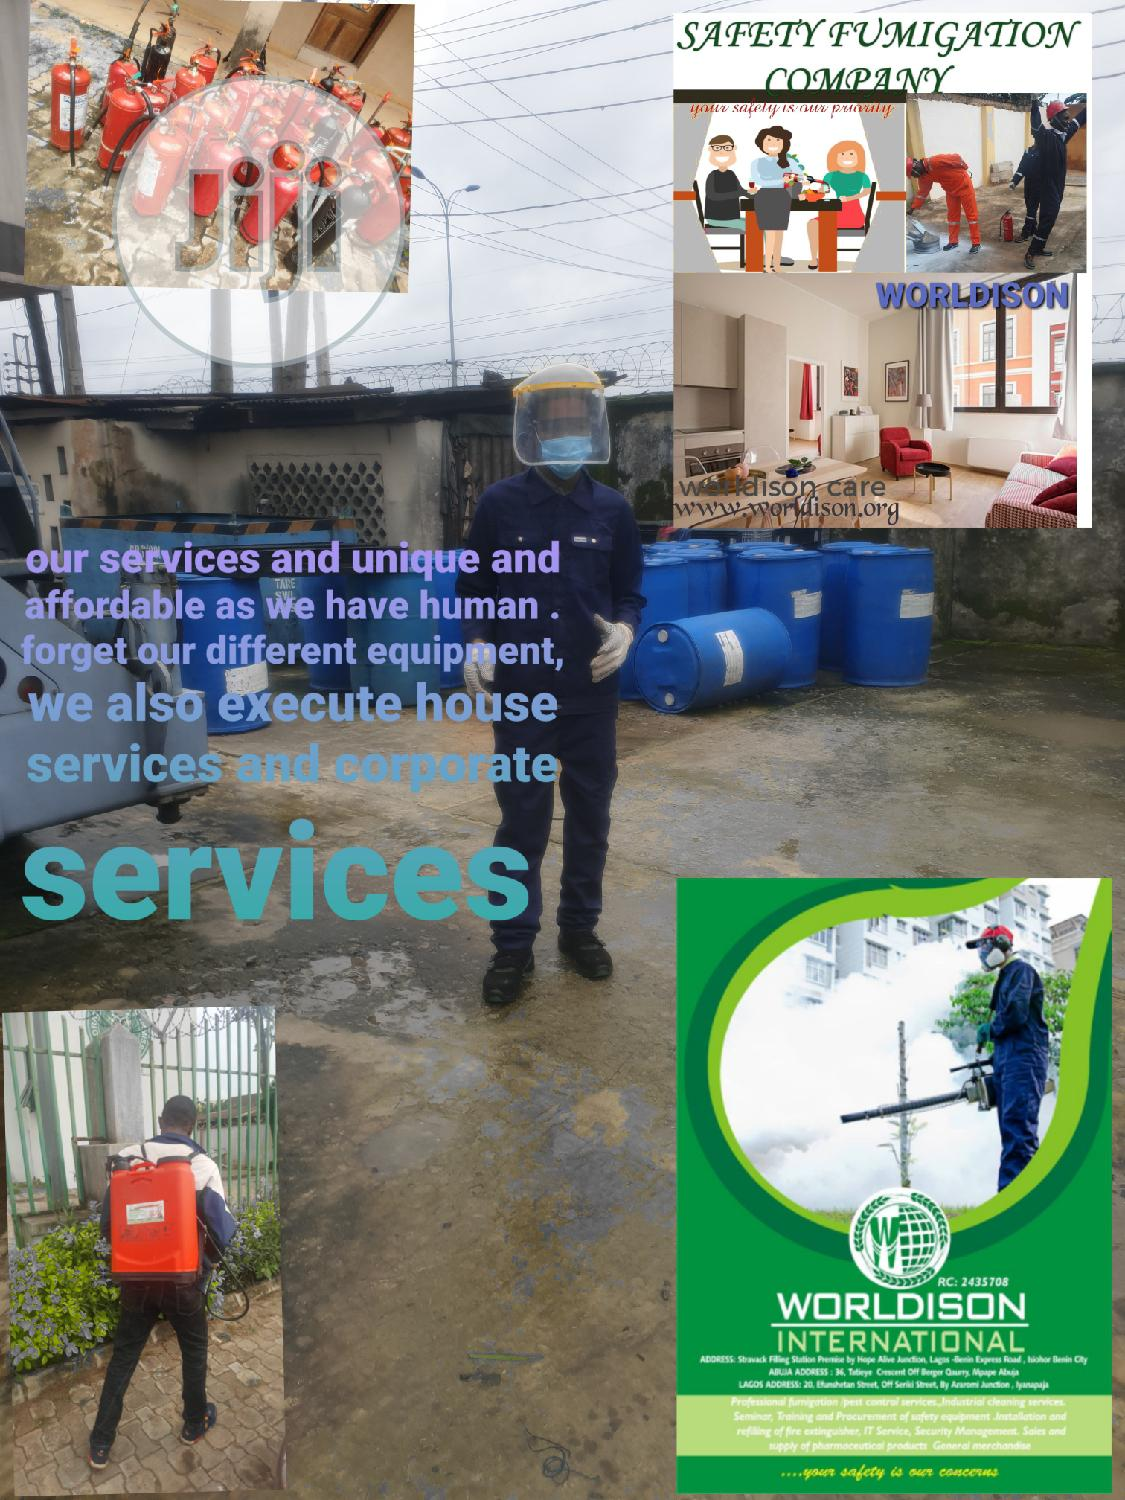 Fumigation, Disinfection and Pest Control